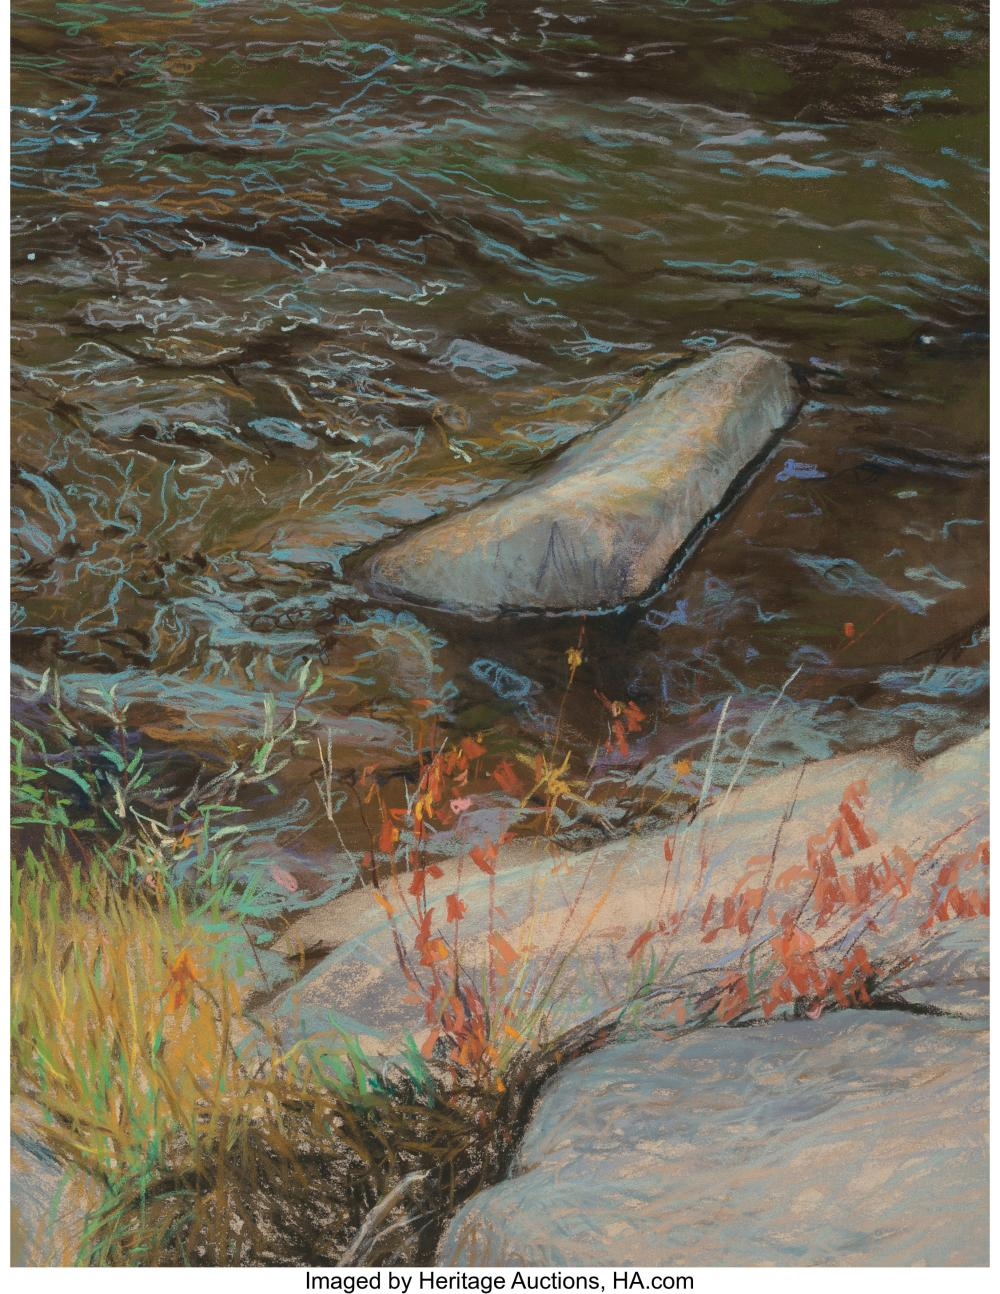 Kitty Wallis (American, b. 1938) Yuba River Pastel on paper 26-1/8 x 20-1/2 inch